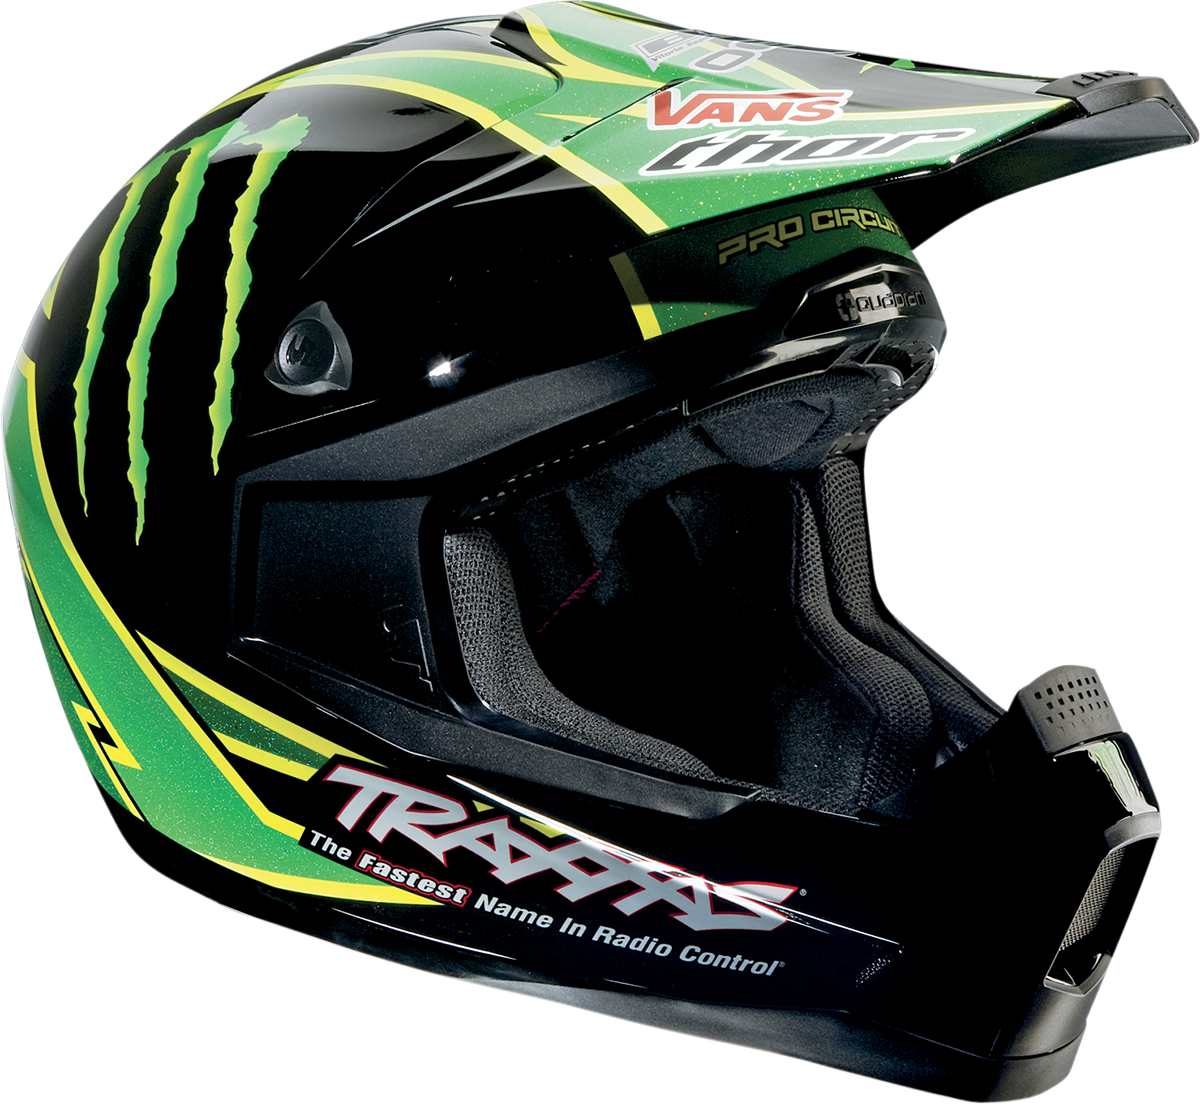 thor monster energy quadrant pro circuit off road motorcycle helmet. Black Bedroom Furniture Sets. Home Design Ideas